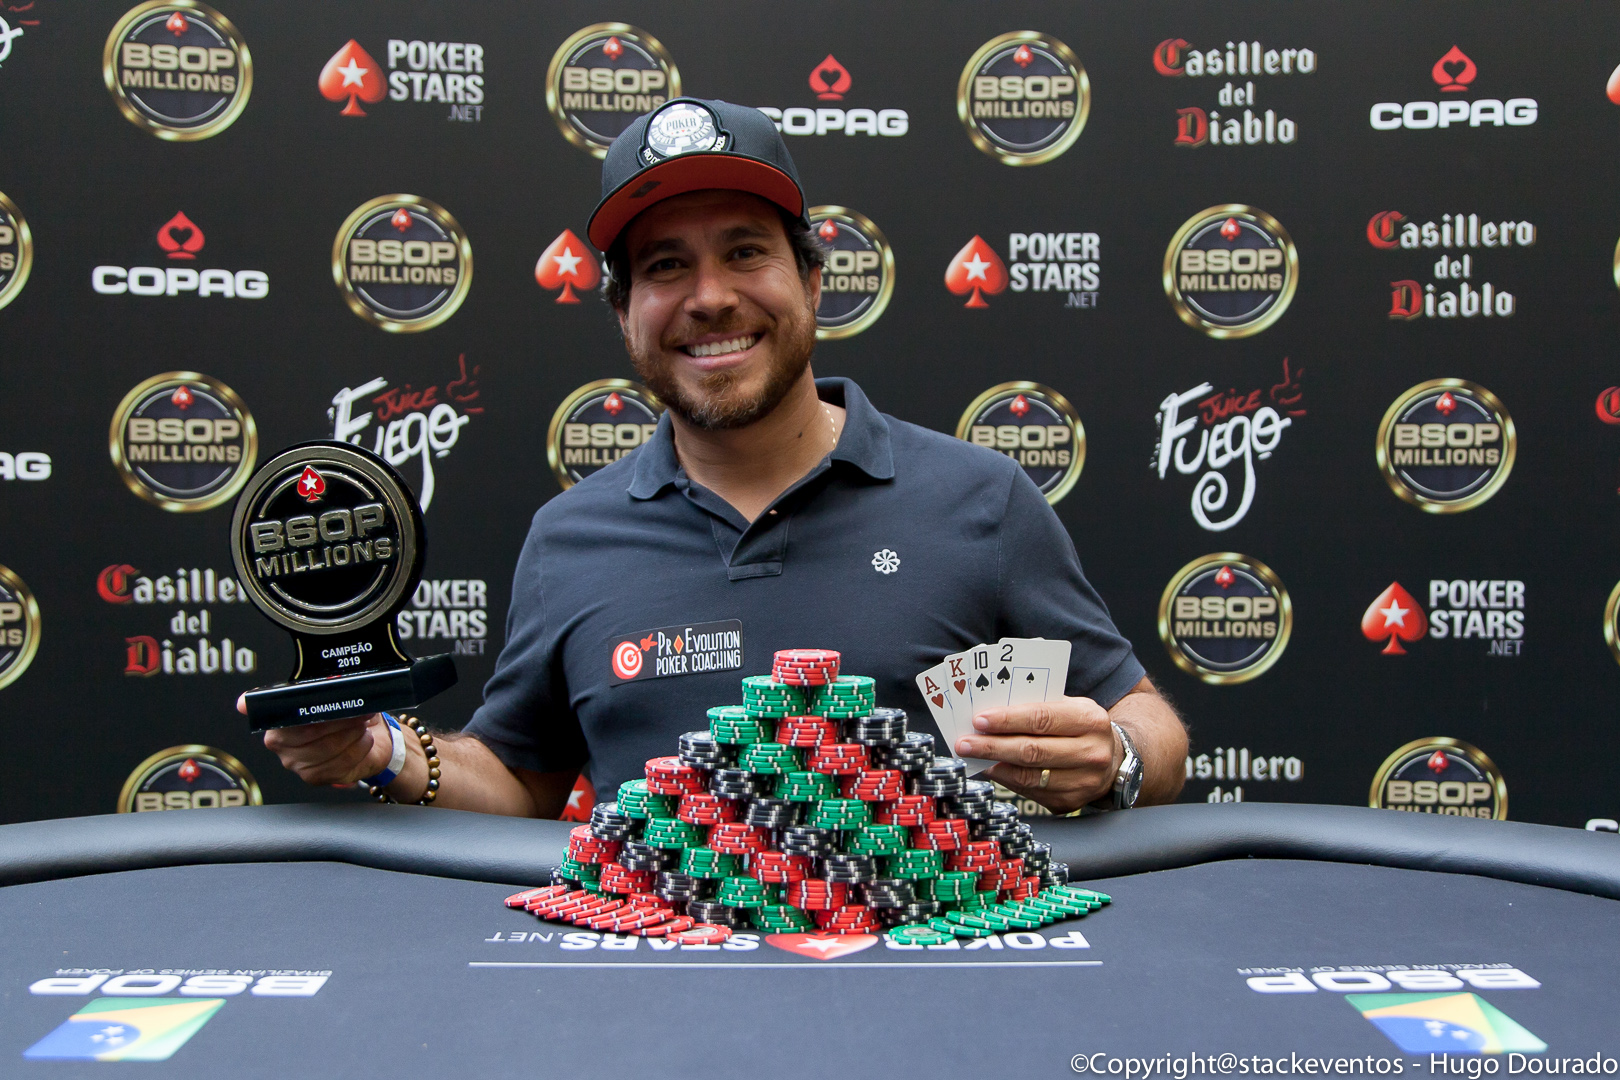 Jean Vicente campeão do Pot-Limit Omaha Hi-Lo do BSOP Millions